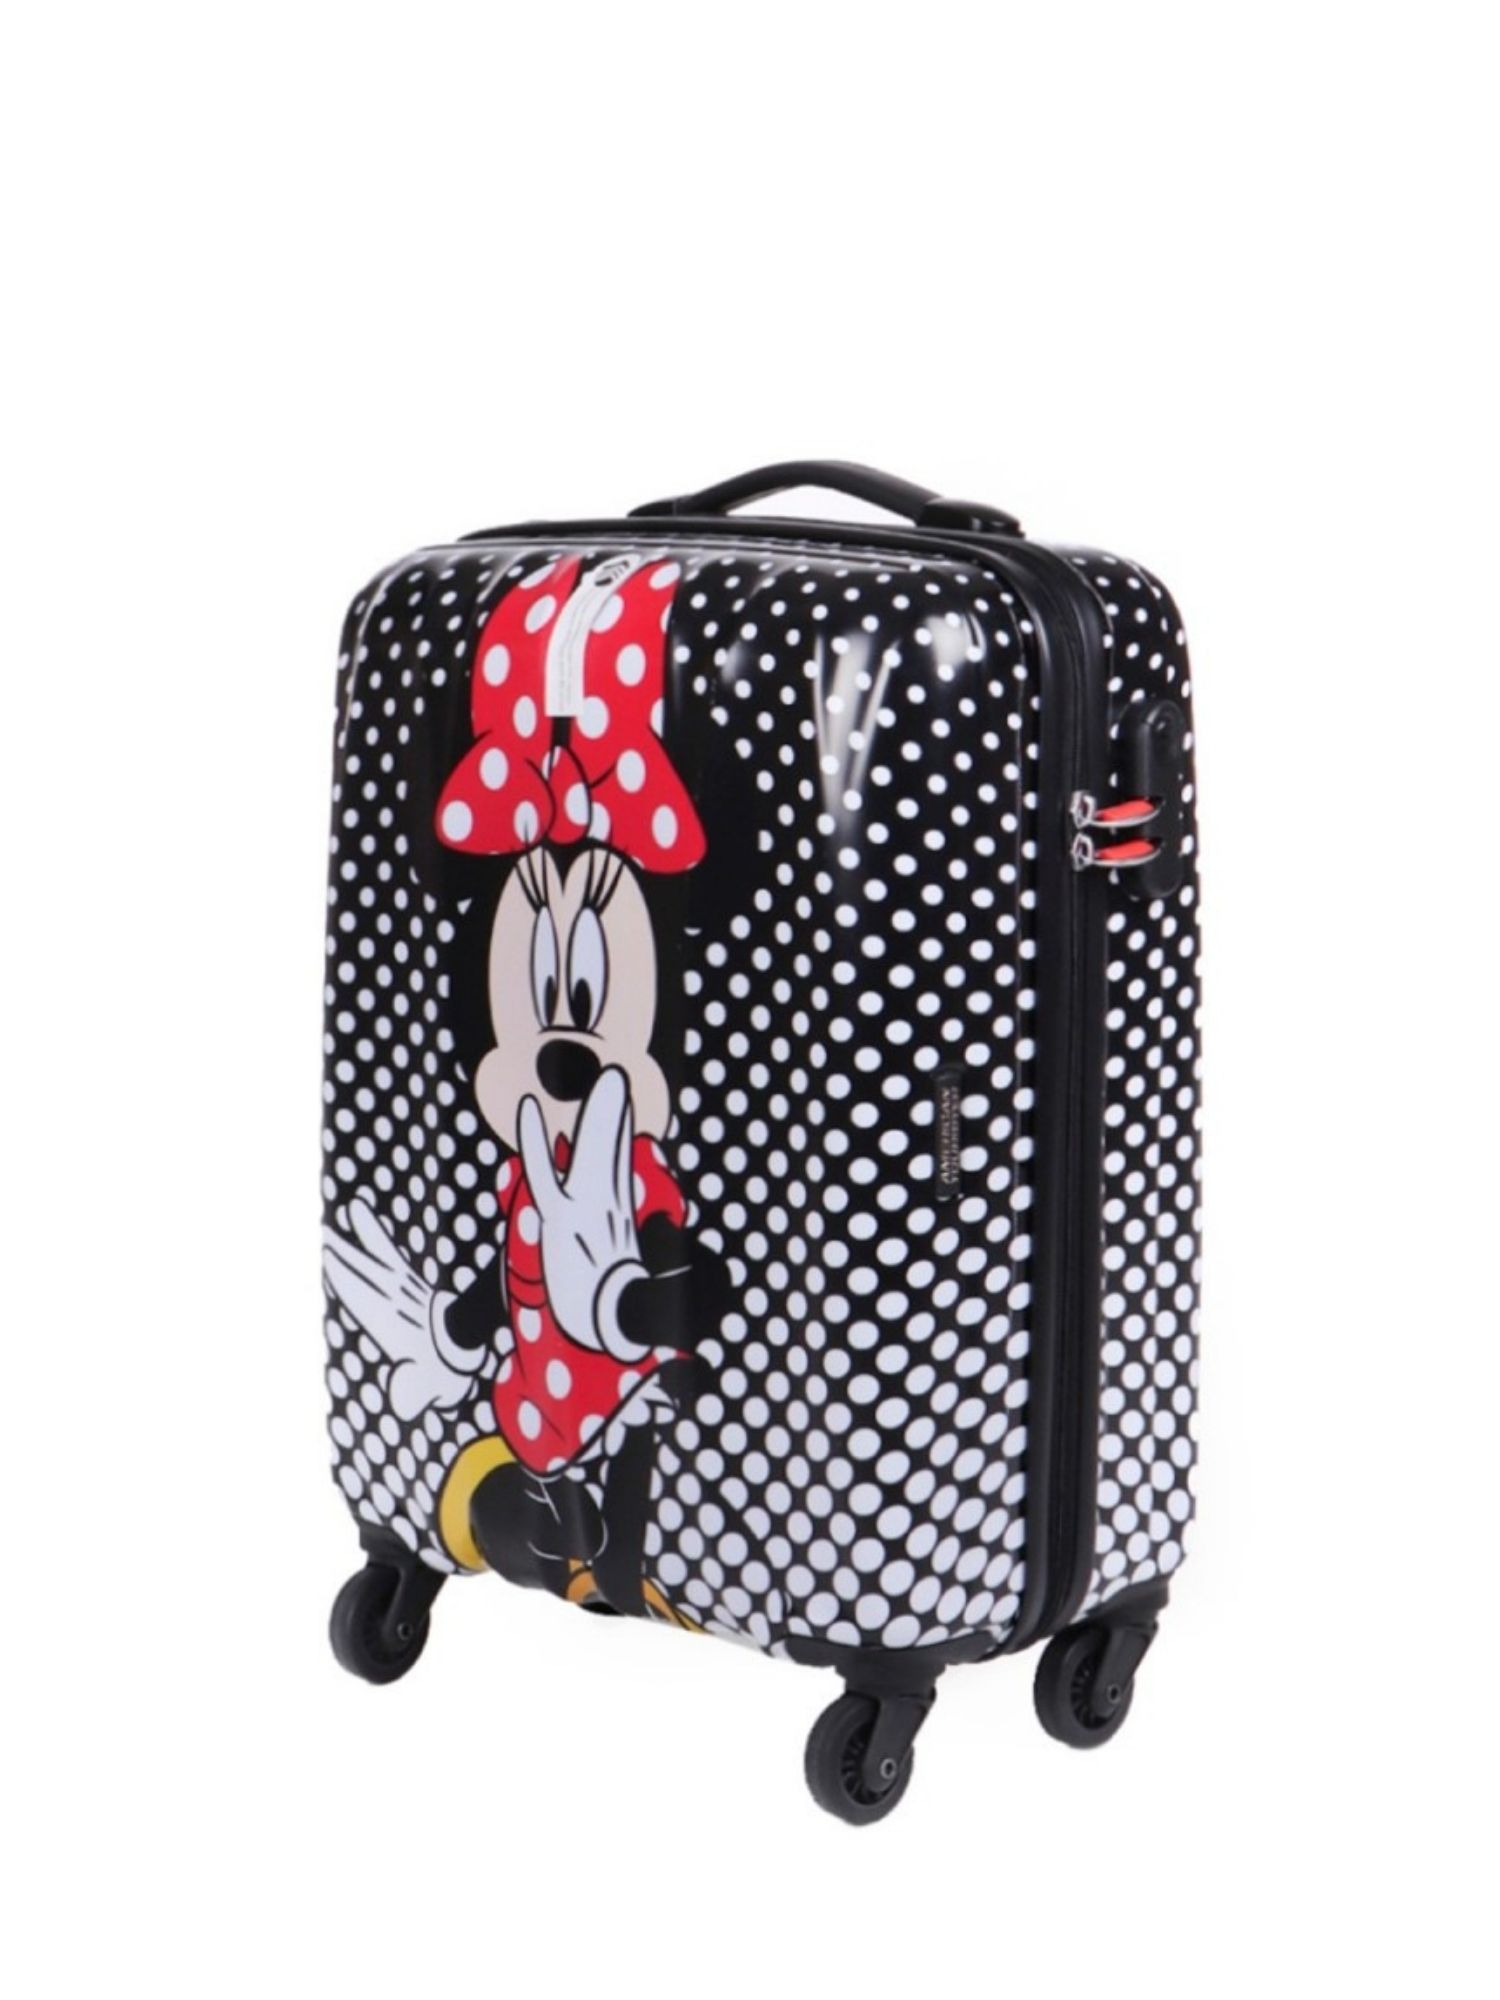 Trolley 4 ruote 55 cm. Disney Legends Minnie Mouse Polka Dot laterale